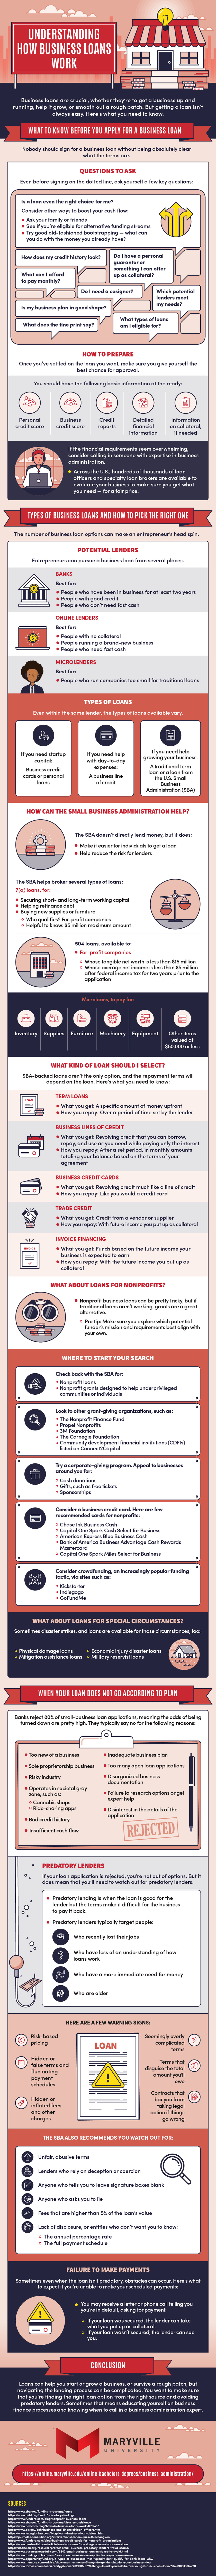 Information on how business loans work for individuals looking to grow a business.